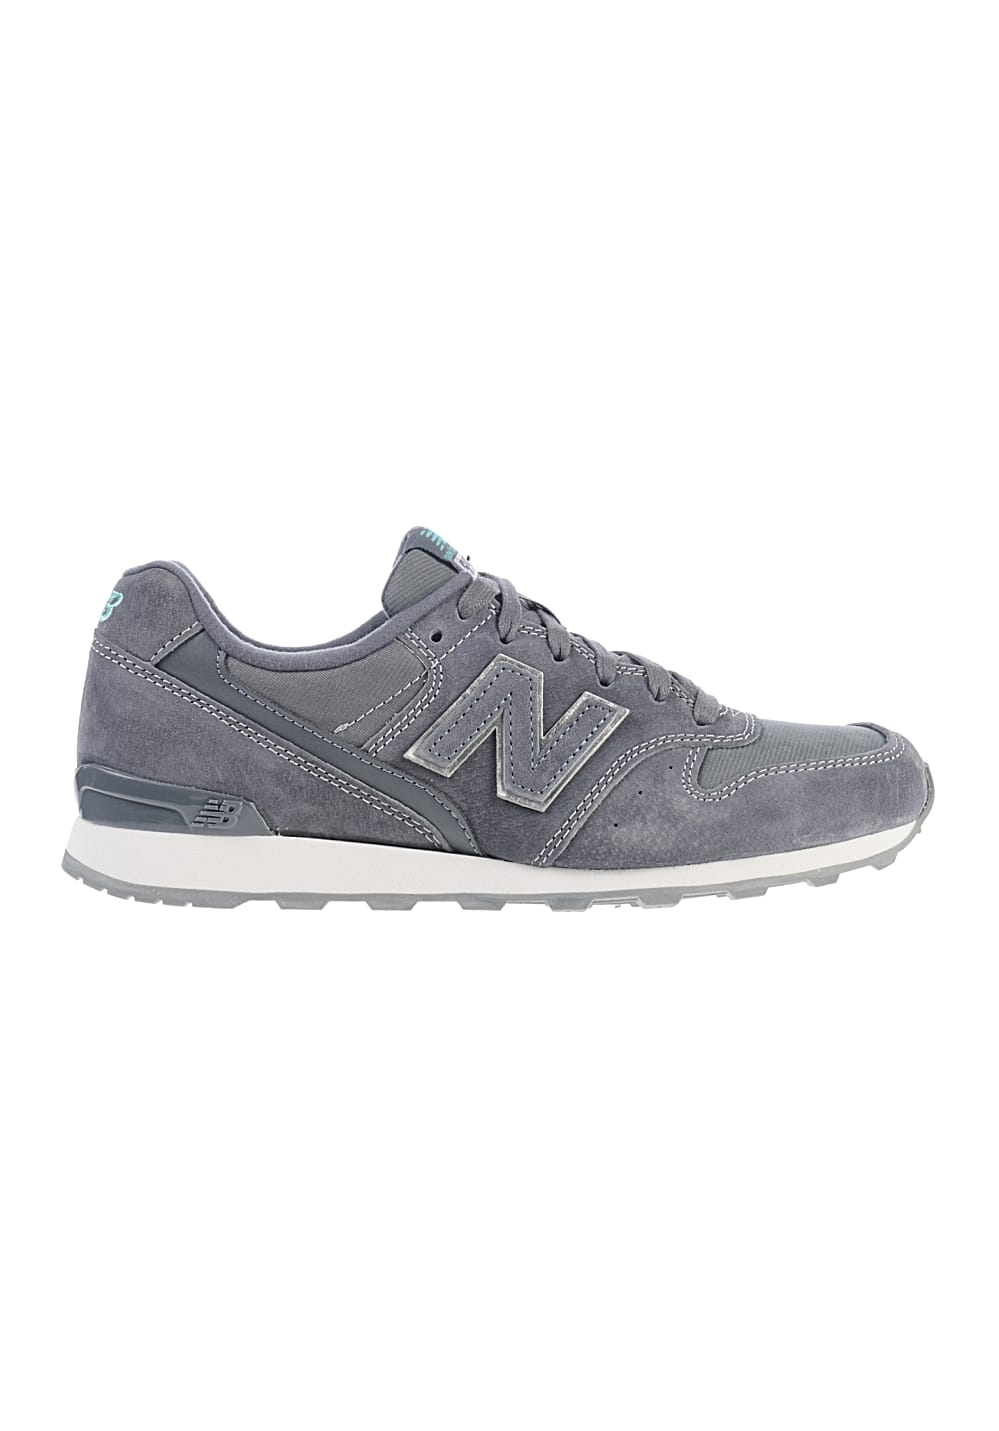 59edd037c9f3 NEW BALANCE WR996 D - Sneaker für Damen - Grau - Planet Sports